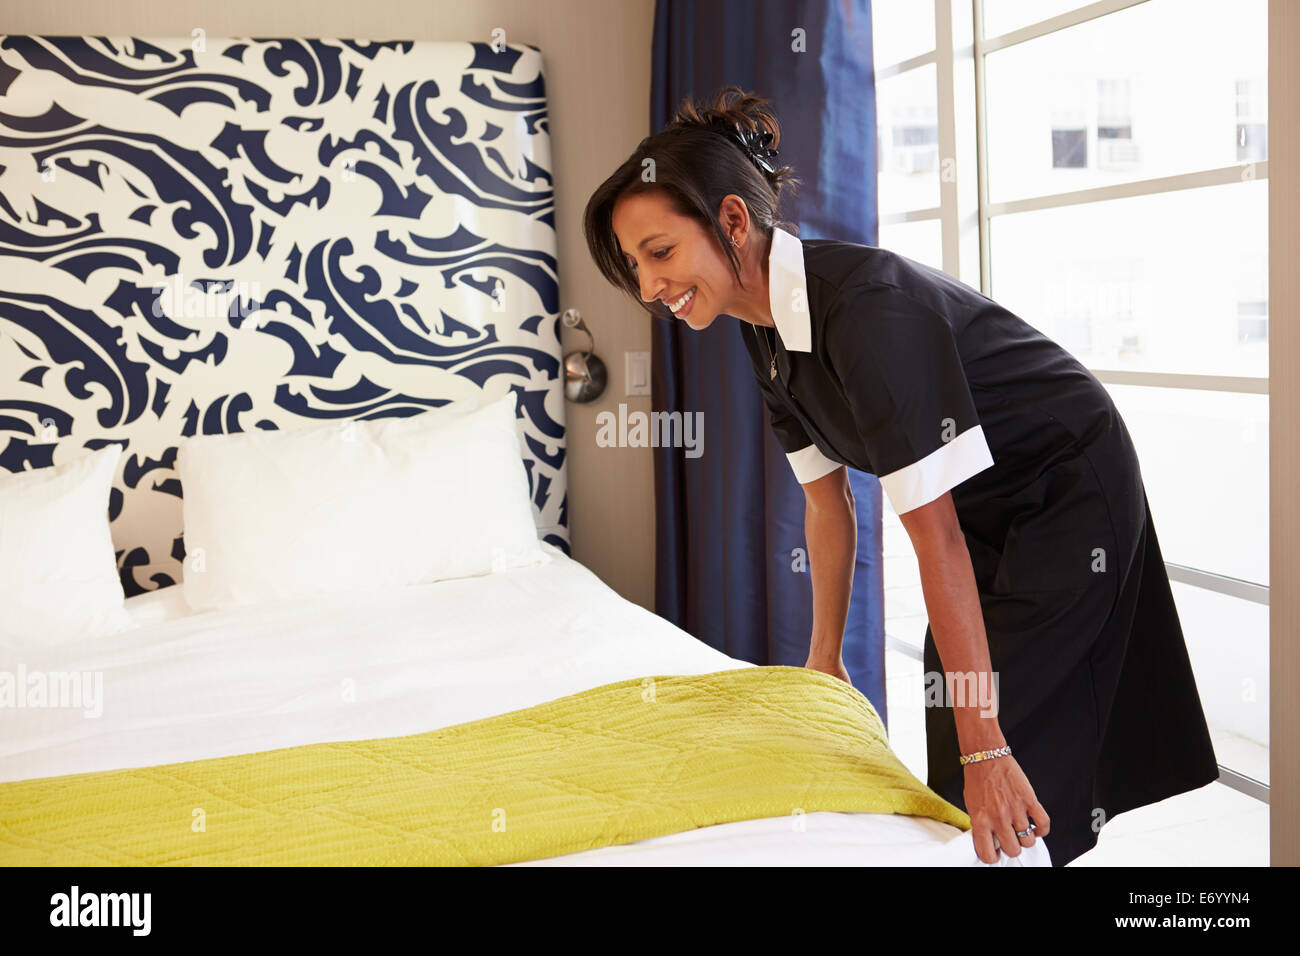 Maid Tidying Hotel Room And Making Bed - Stock Image